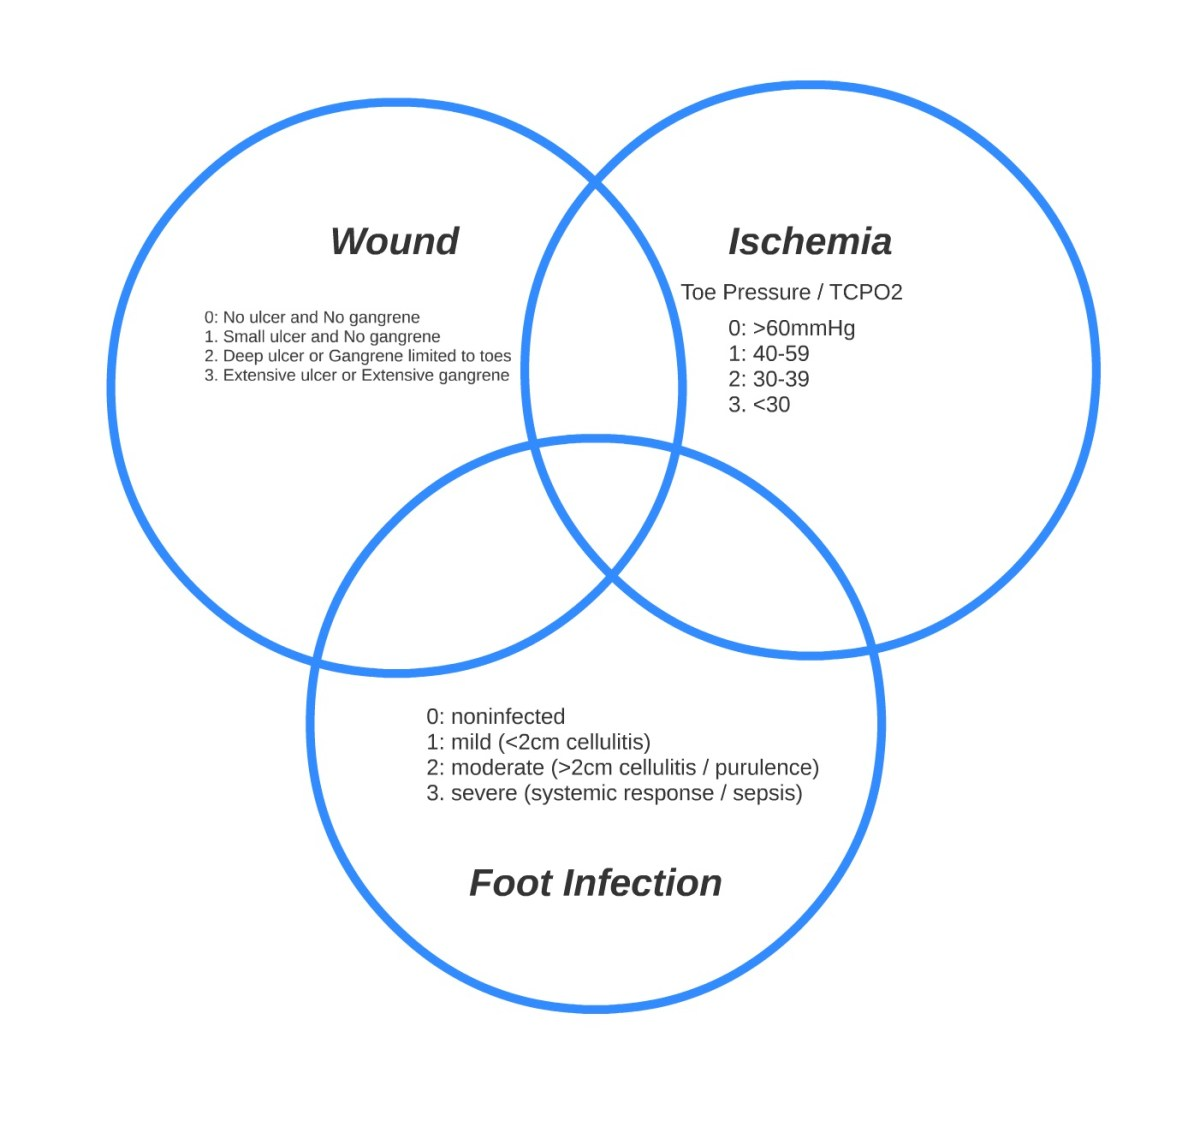 Visualizing and Using WIFI Everyday (Wound, Ischemia, Foot Infection): Three Dynamic Rings of Risk